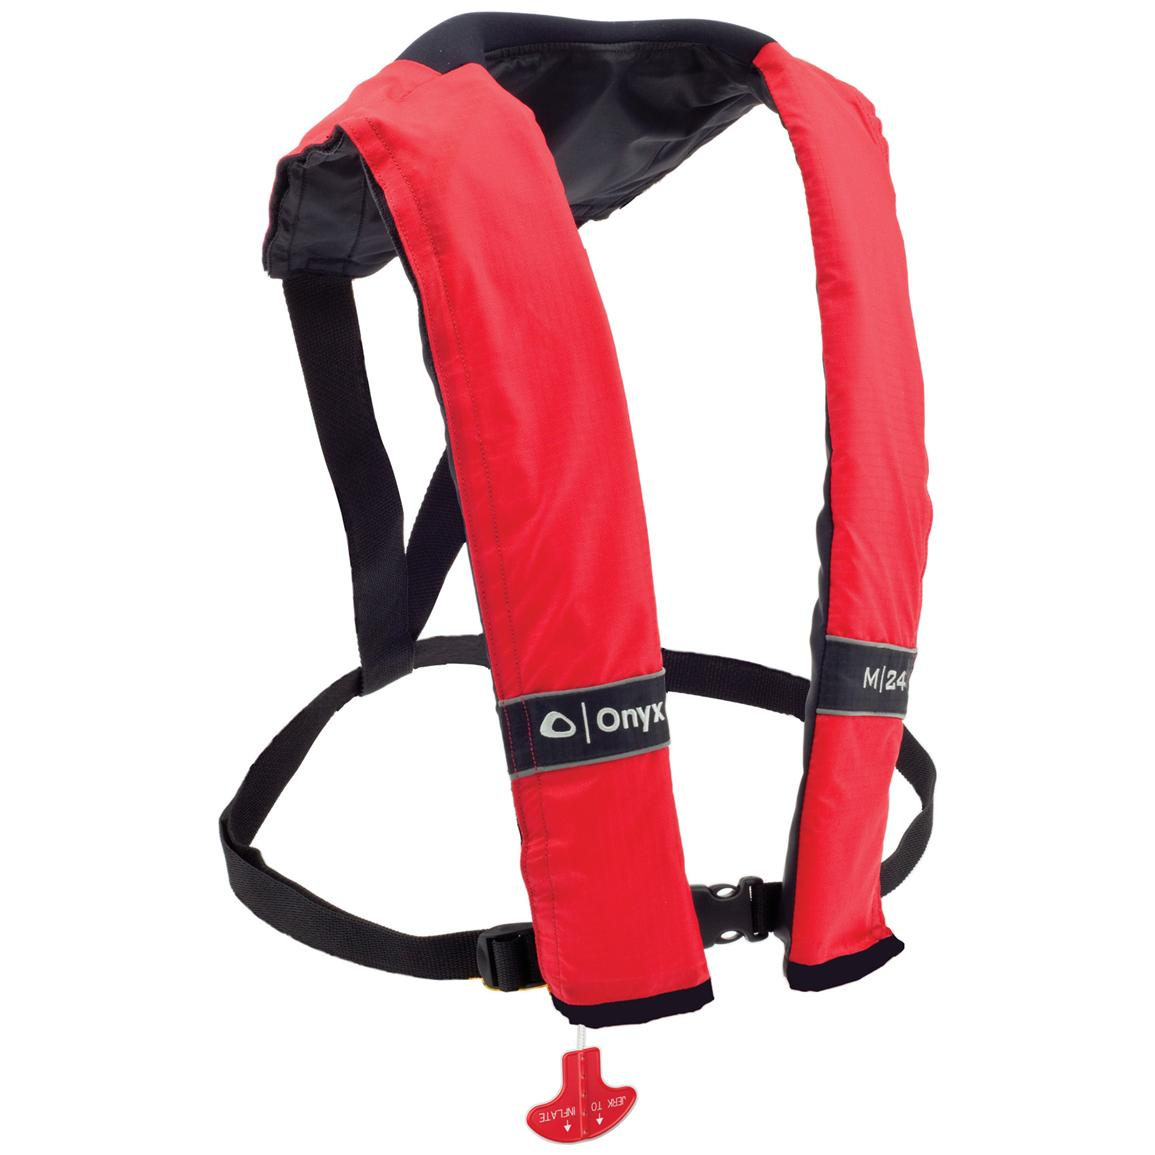 Onyx® 3100 M-24 Manual Inflatable PFD